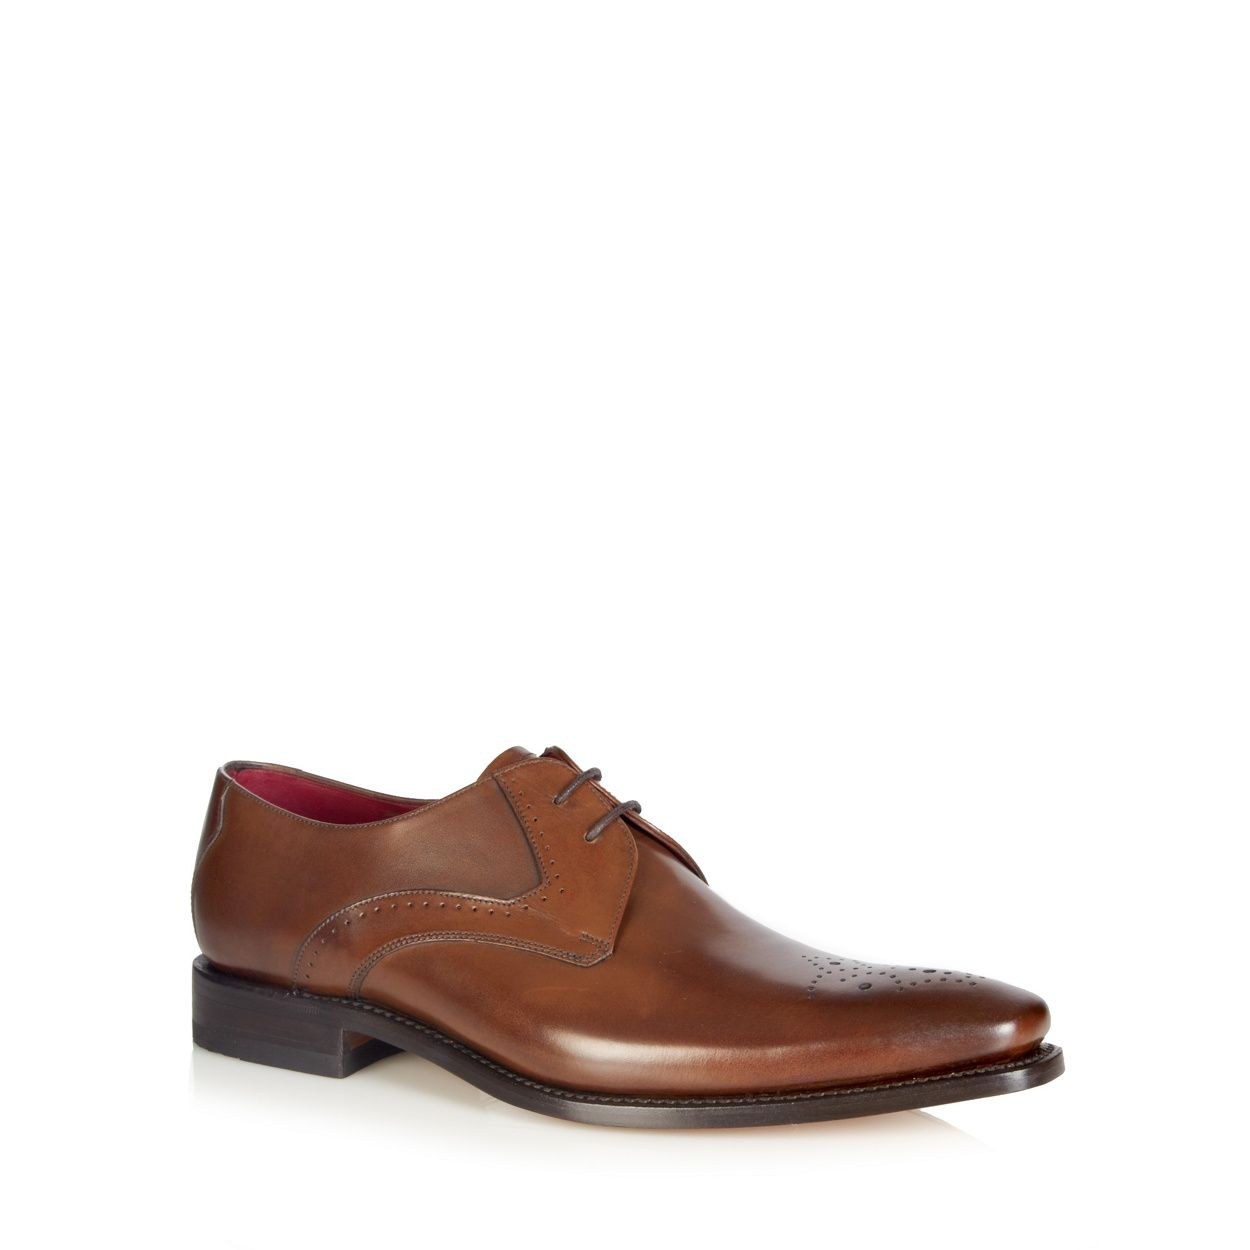 Loake Punch Detail Leather Shoes 10 TAN yKH1a4saqC